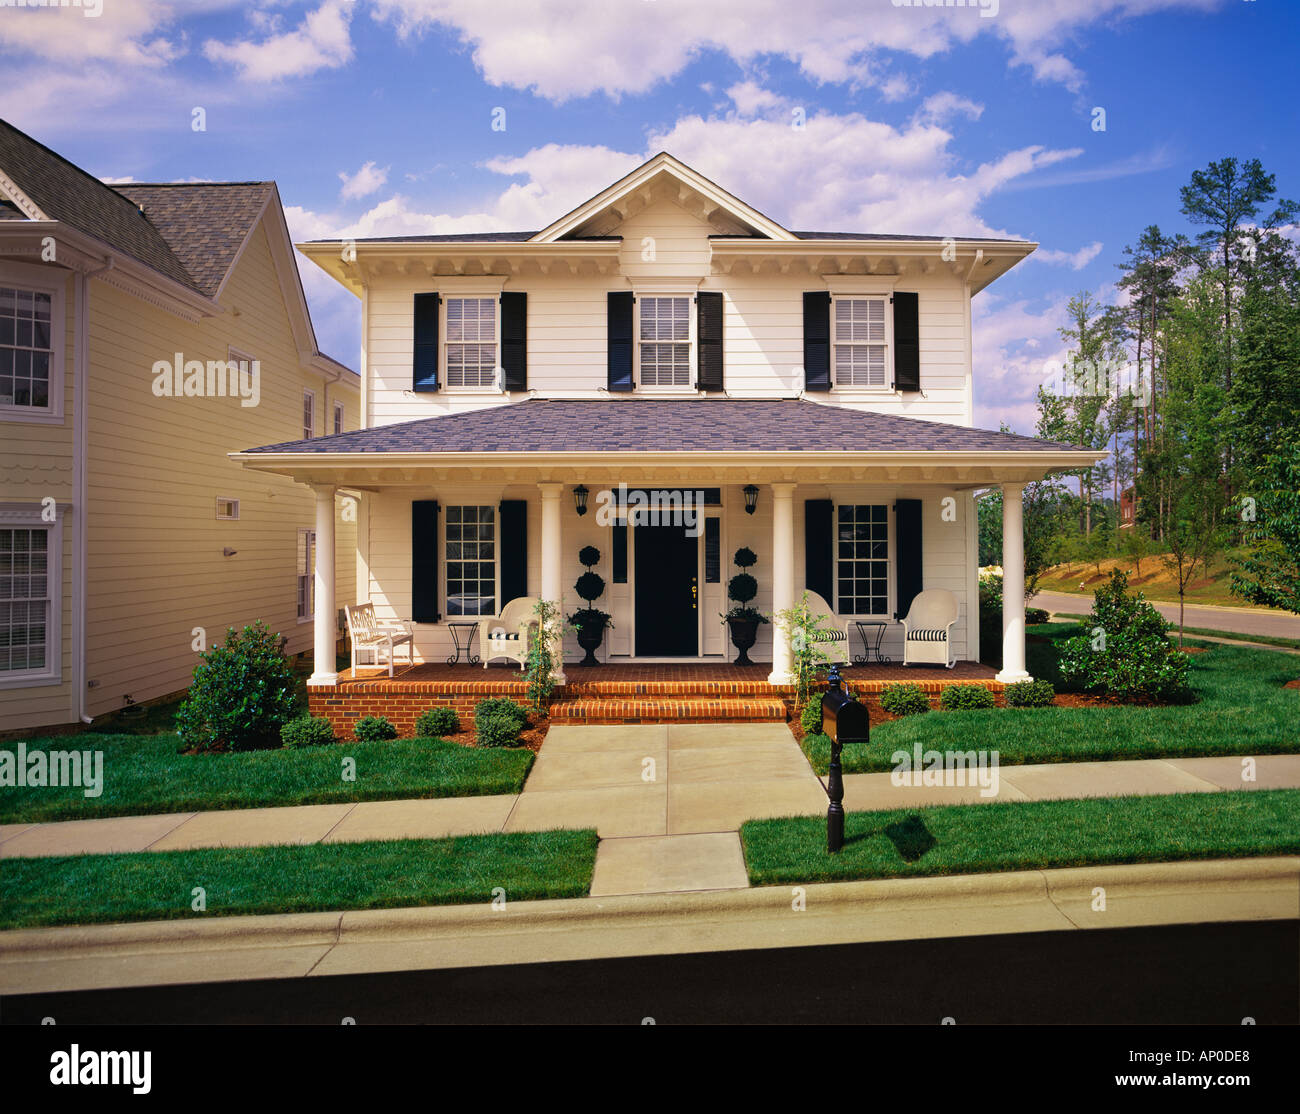 Small Two Story White House With Black Shutters Brick Porch Stock